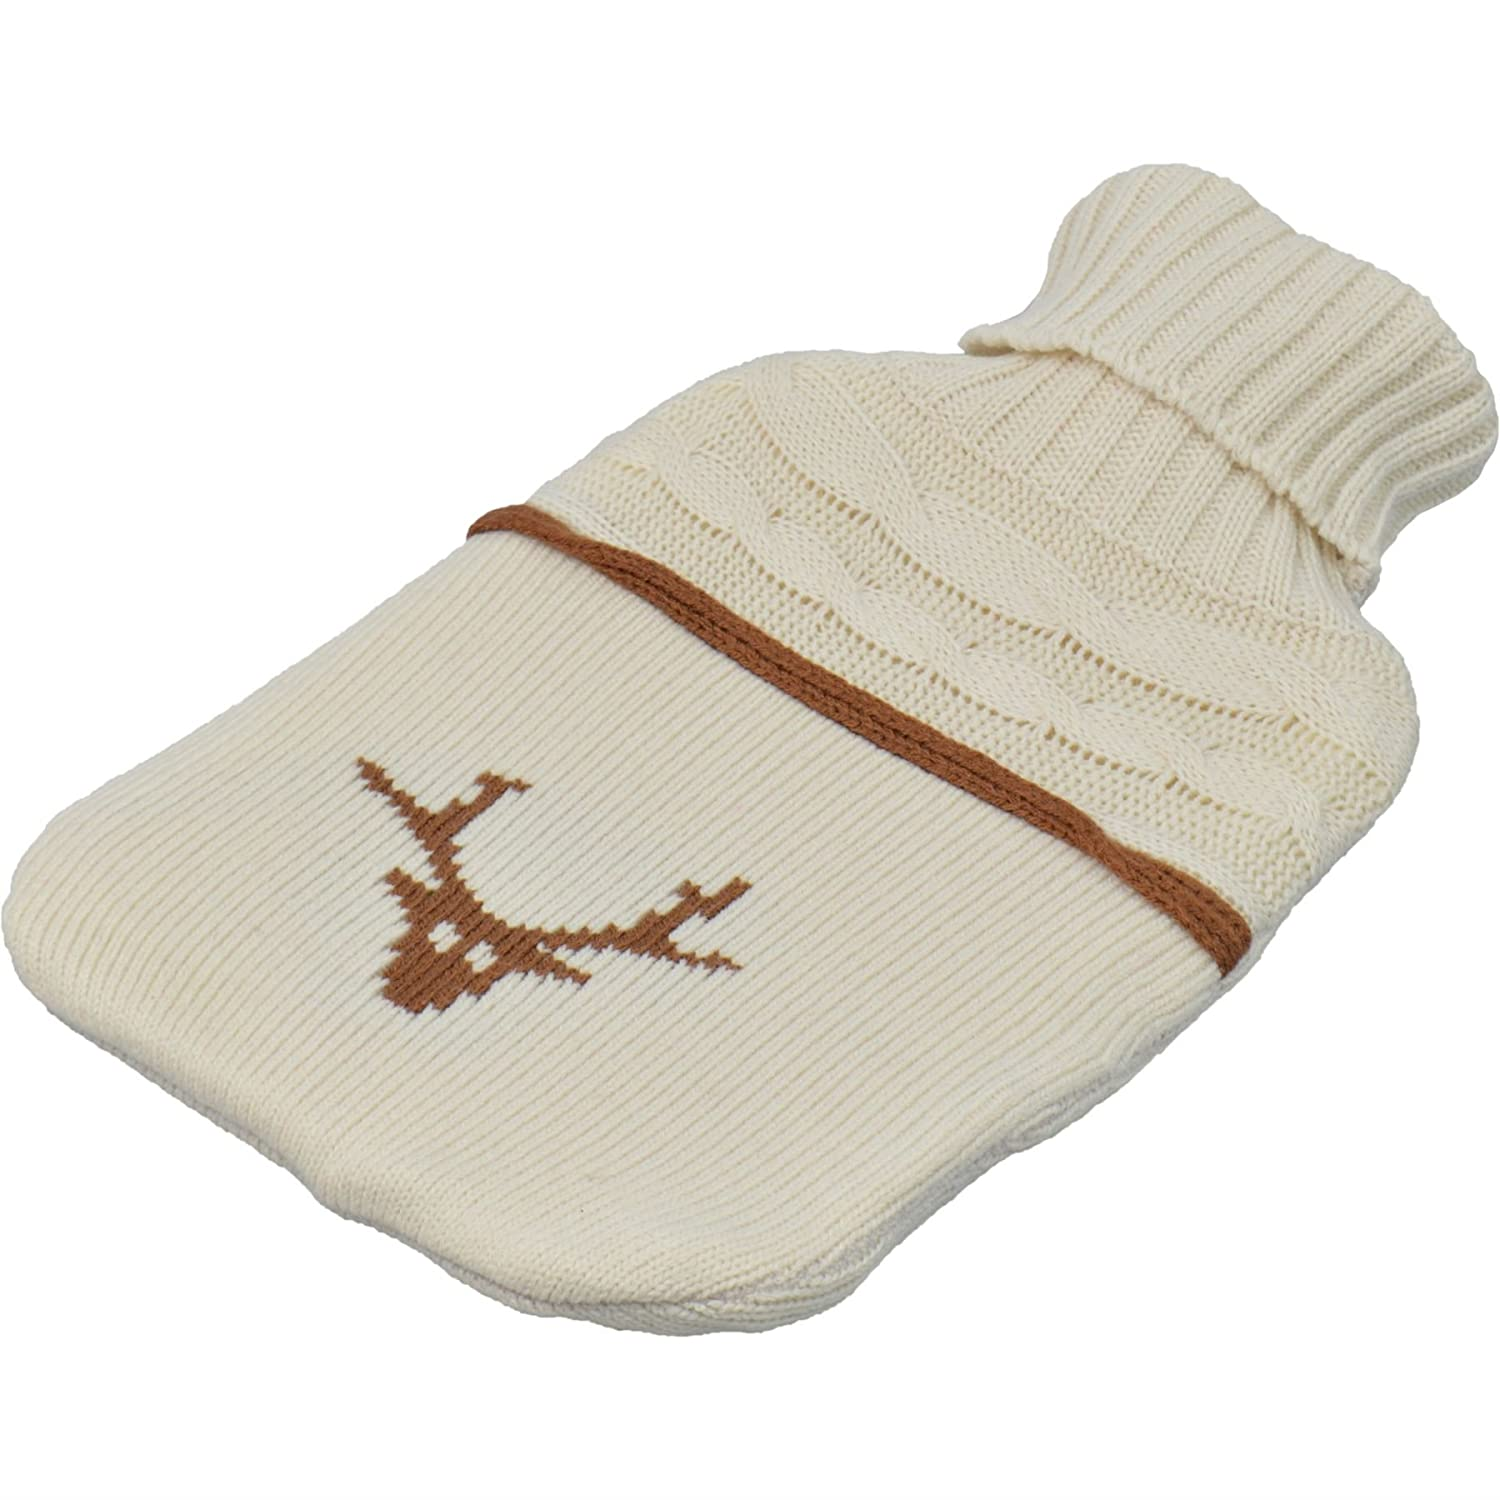 Harbour Housewares Full Size Hot Water Bottle With Knitted Cover - Cream Stag / Reindeer